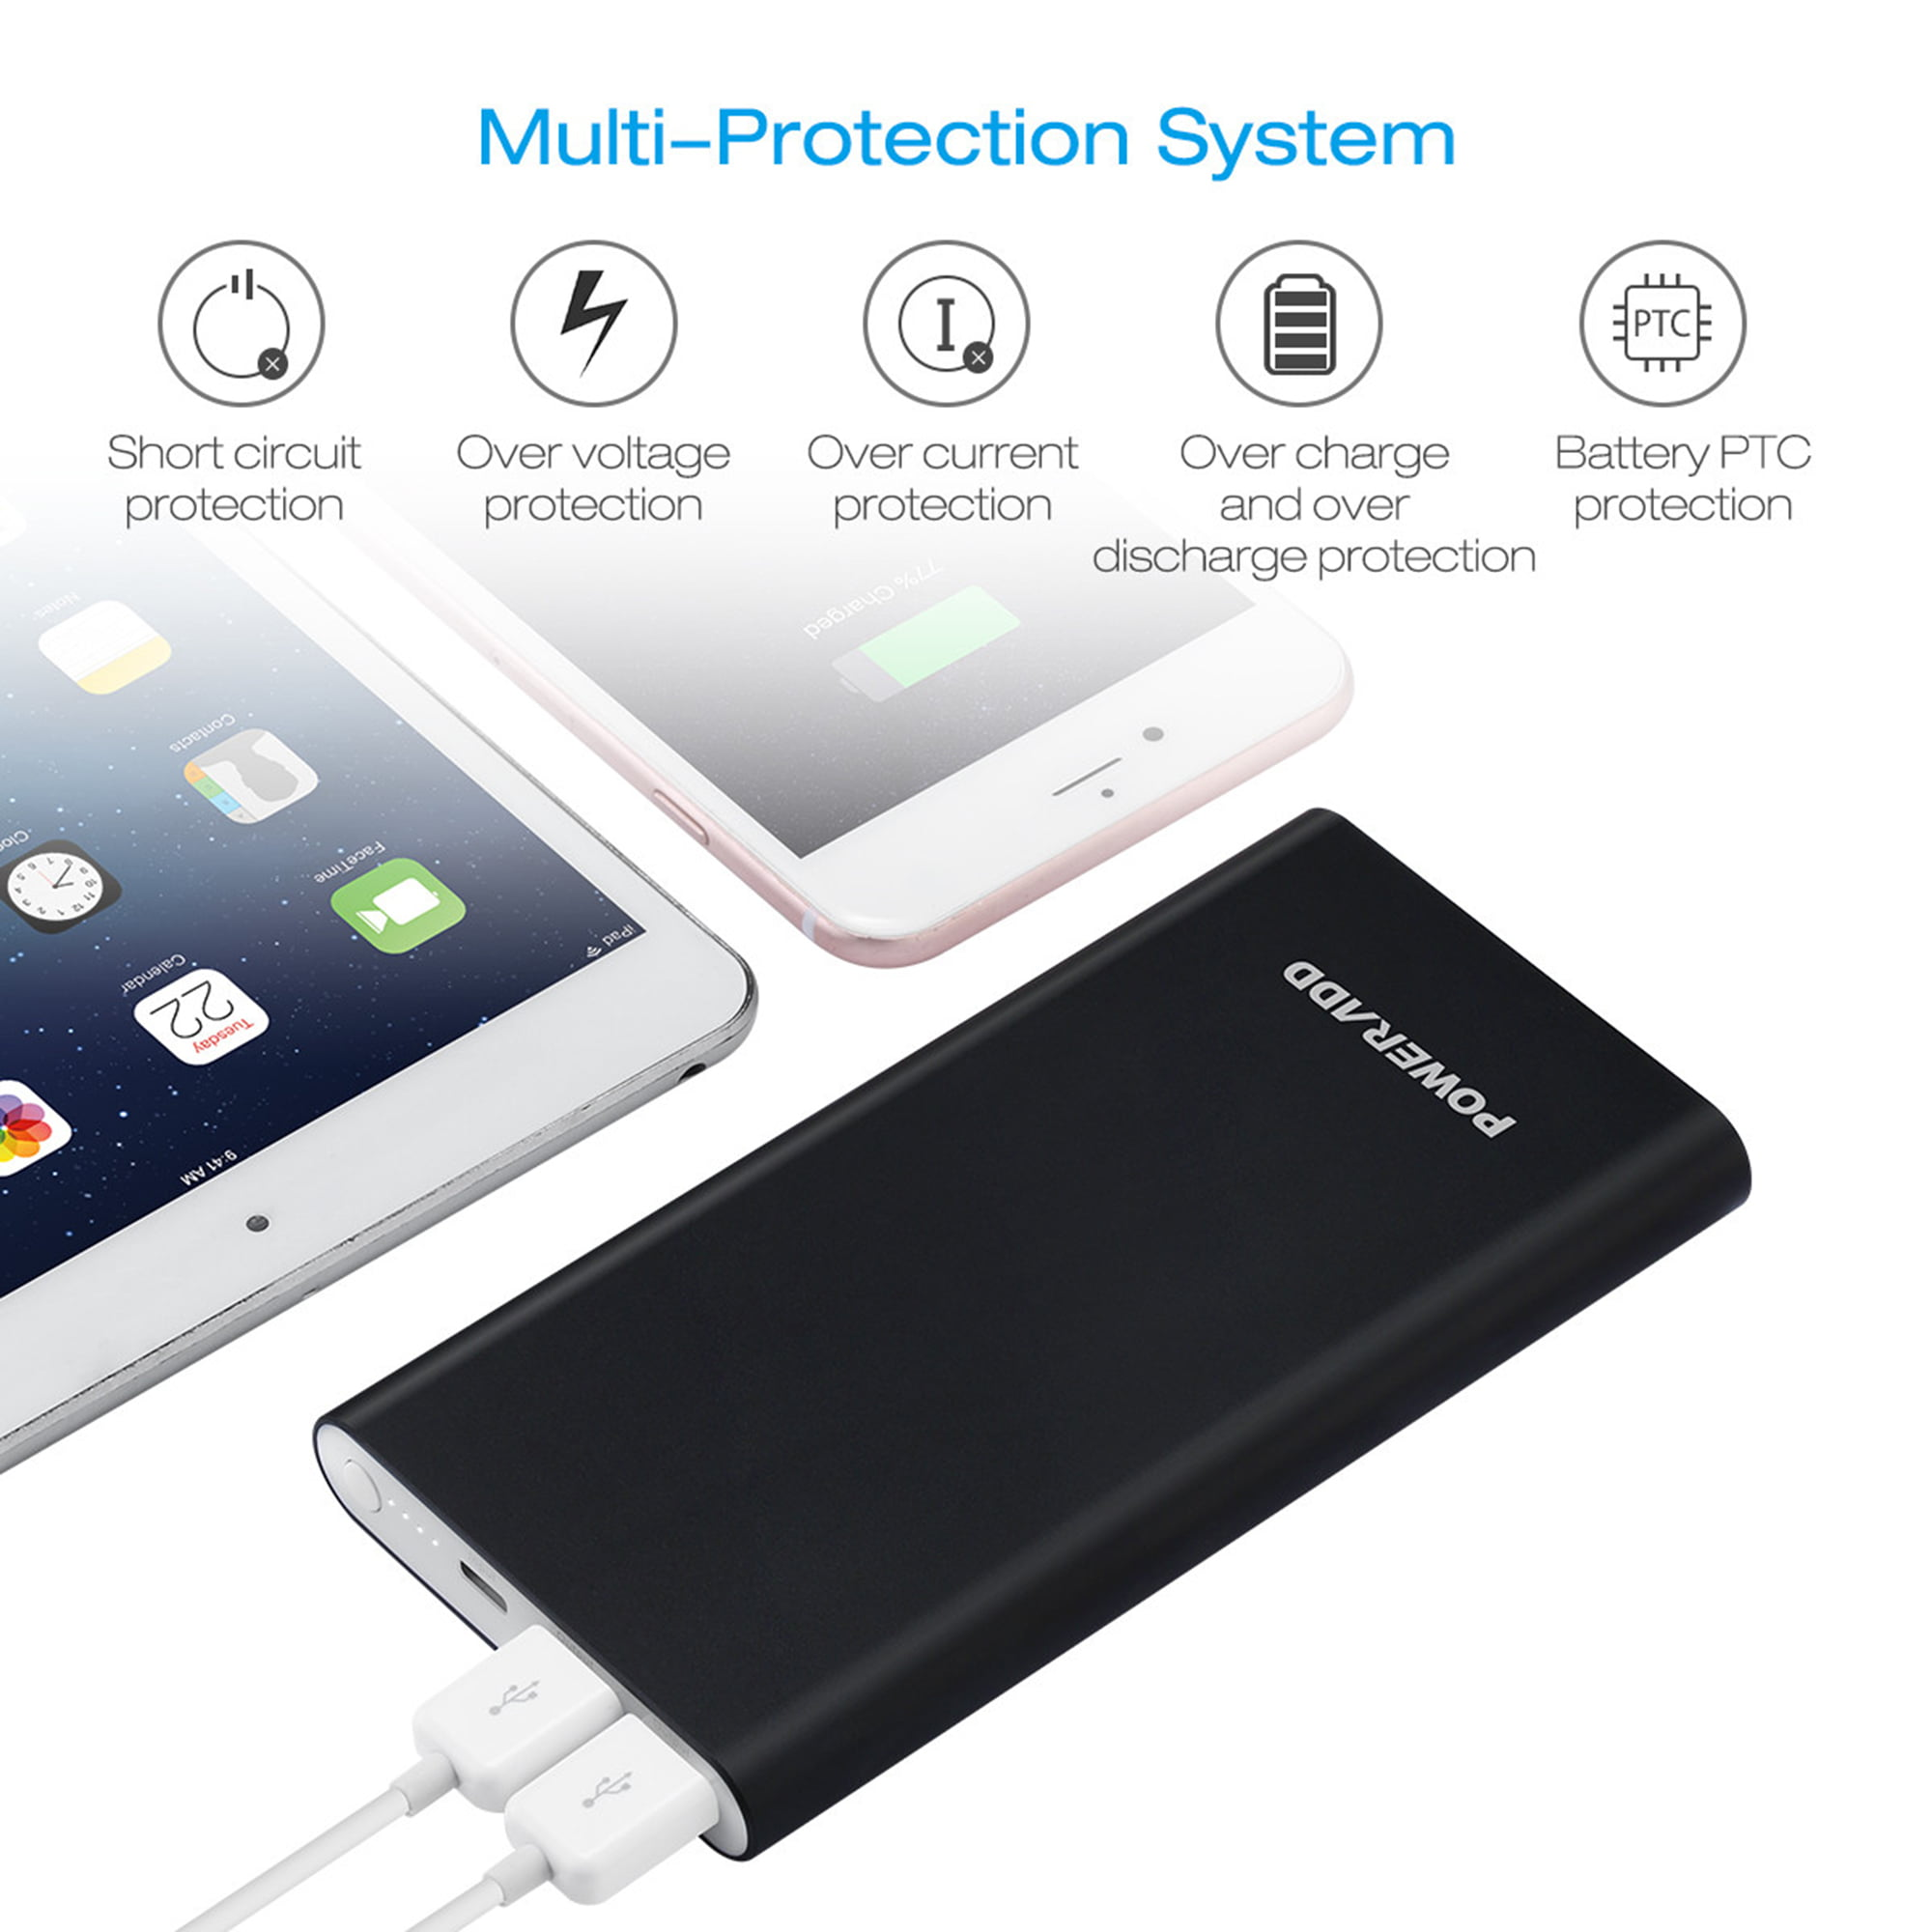 Poweradd Pilot 4gs 12000mah Power Bank Portable Charger 3a Dual Circuit Mobile Phone Battery Ports External Pack With Lightning 8 Pin Cable 33ft